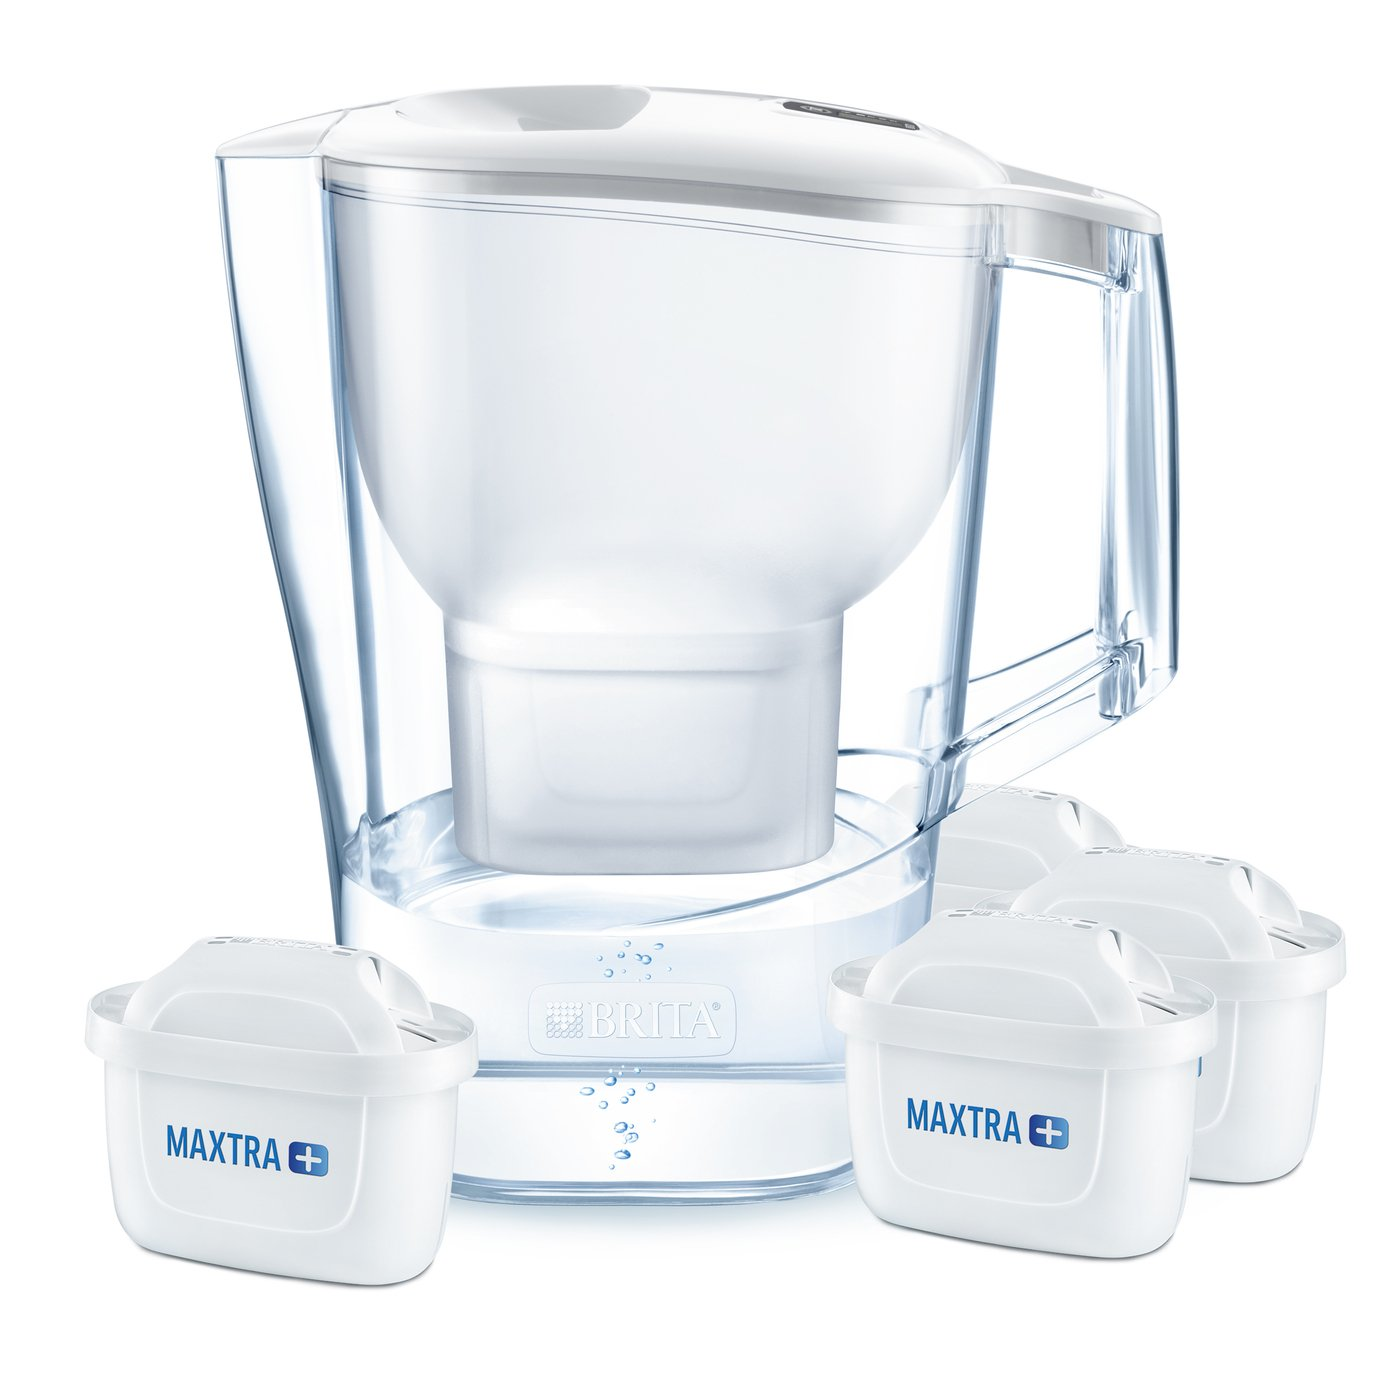 Image of Brita Aluna X-Large Jug with 4 Filter Cartridges - White